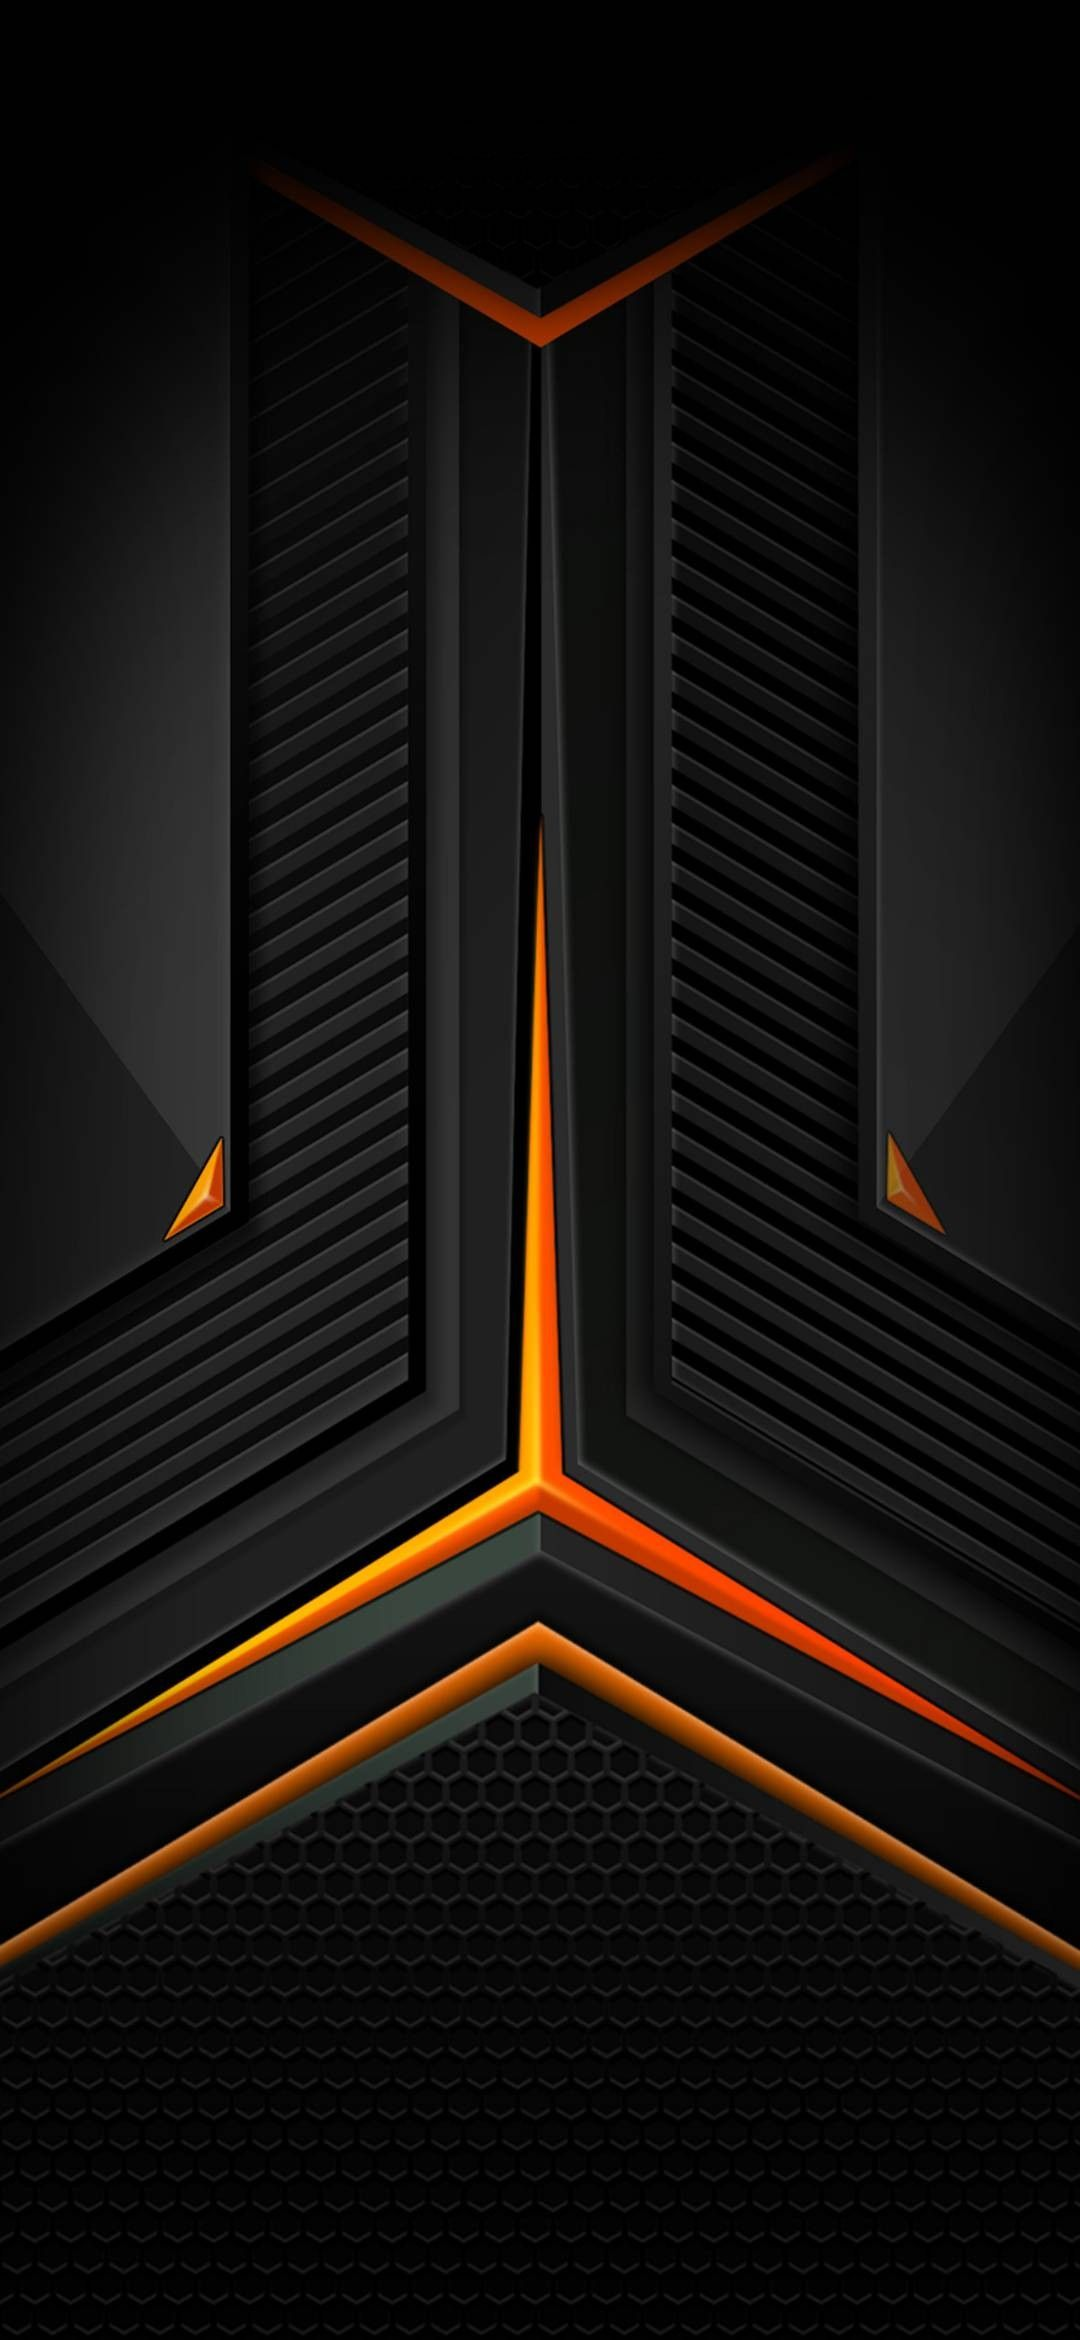 Pin By Gabriel Duran On Jersey Design Phone Wallpaper Design Electronics Wallpaper Cool Wallpapers For Phones